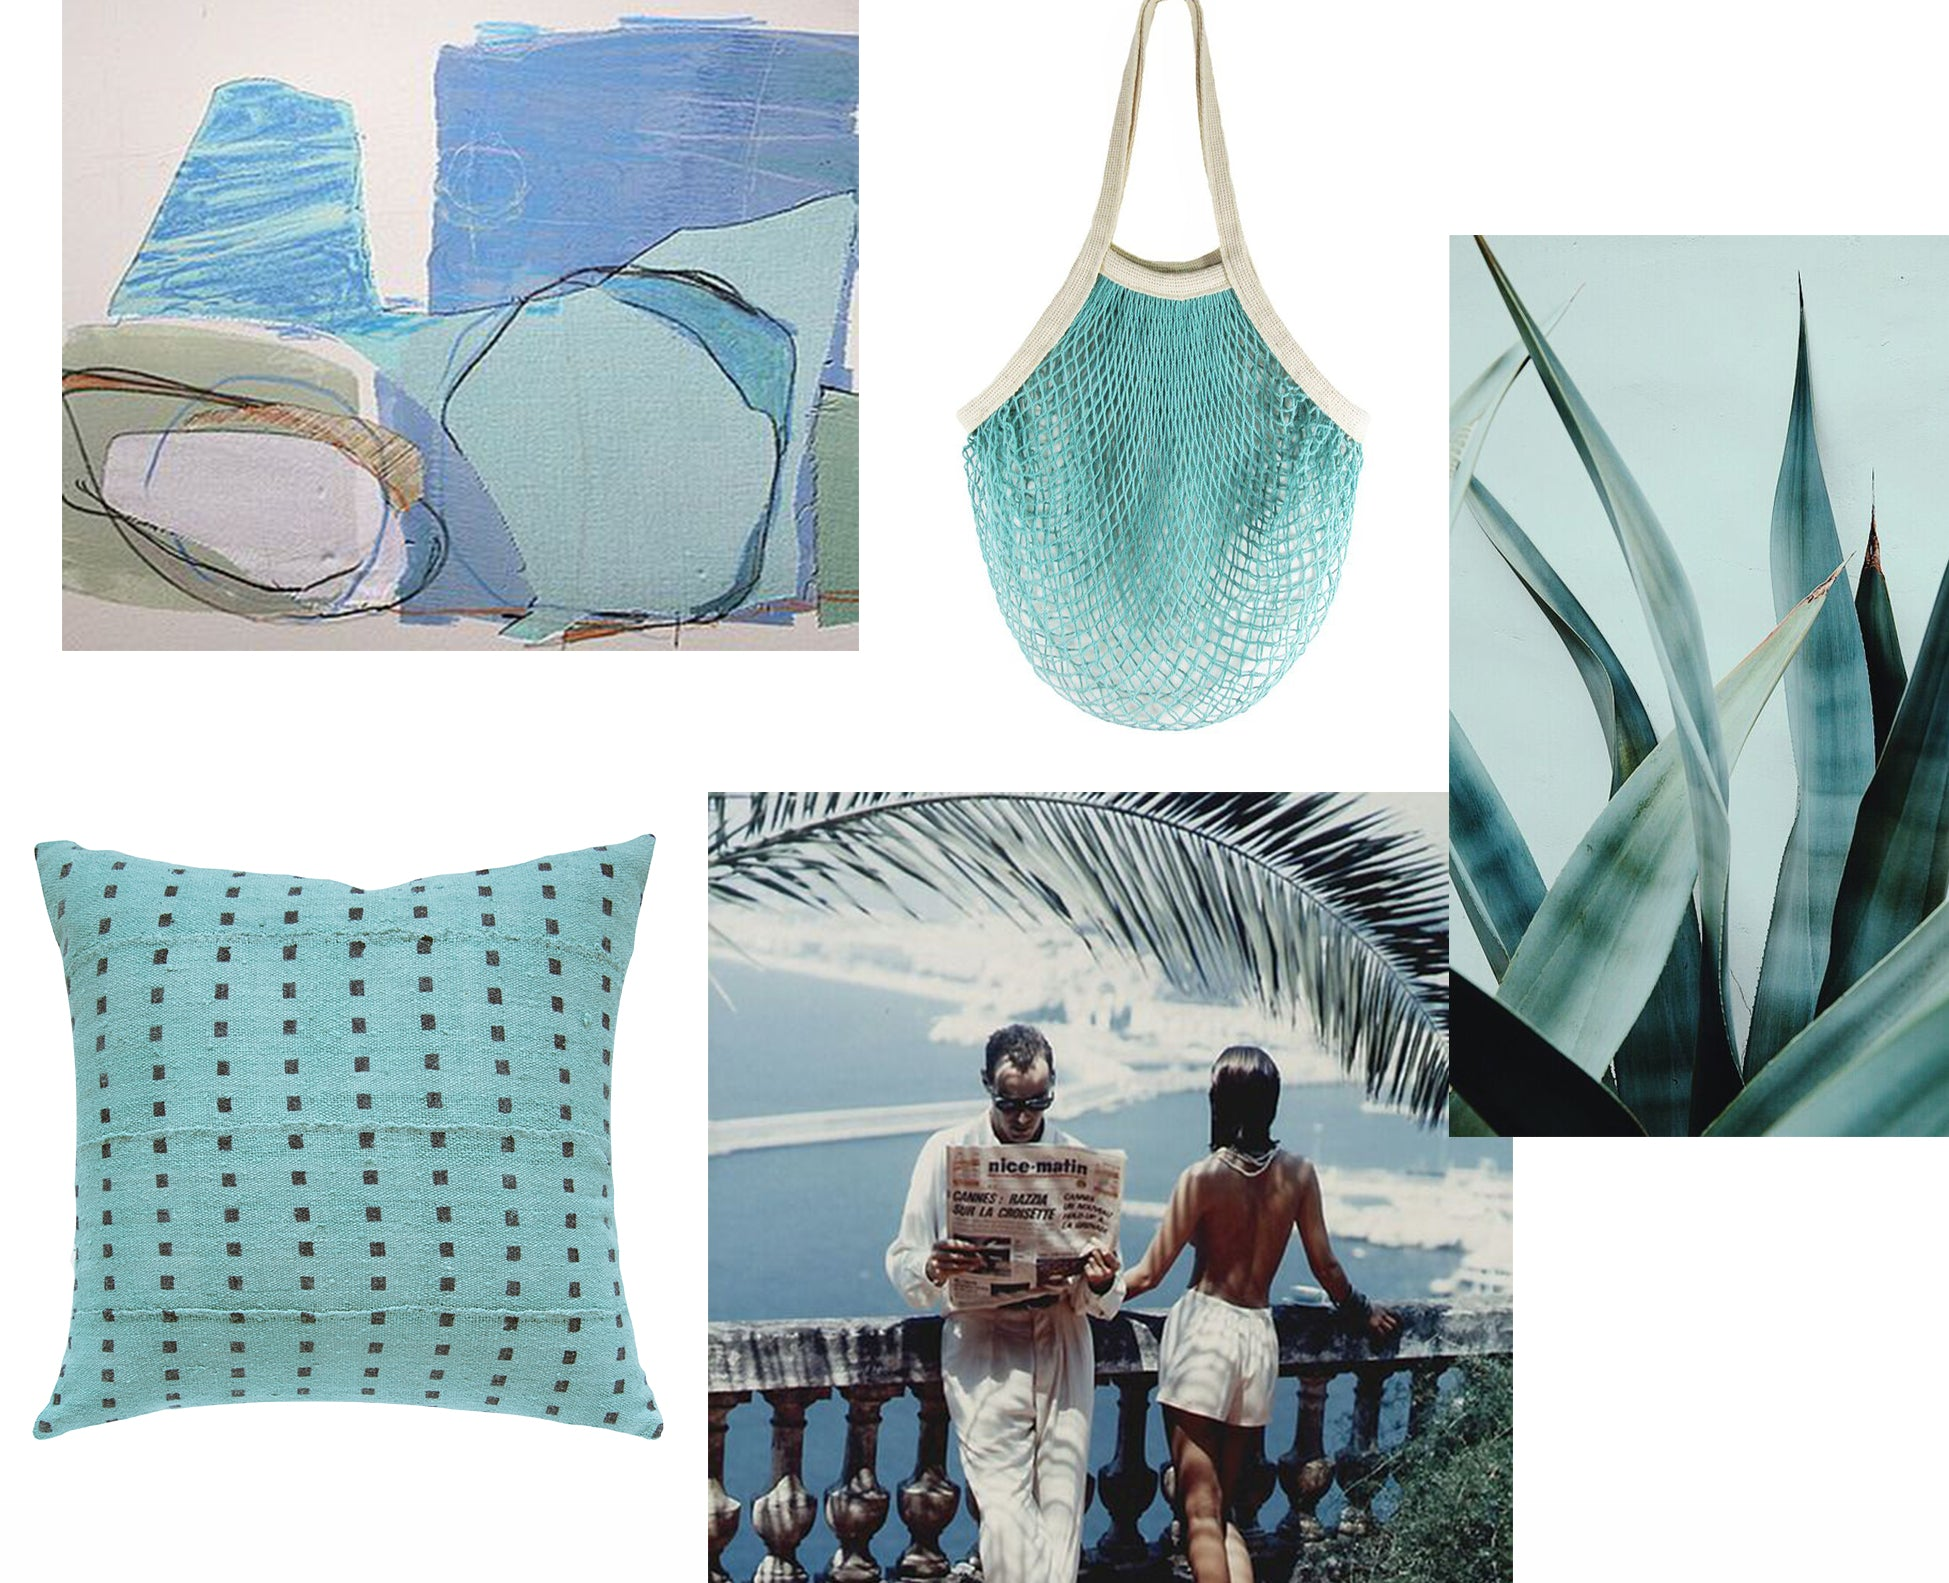 collage of blue images. Blue pillow with little blue squares. Blue net bag.